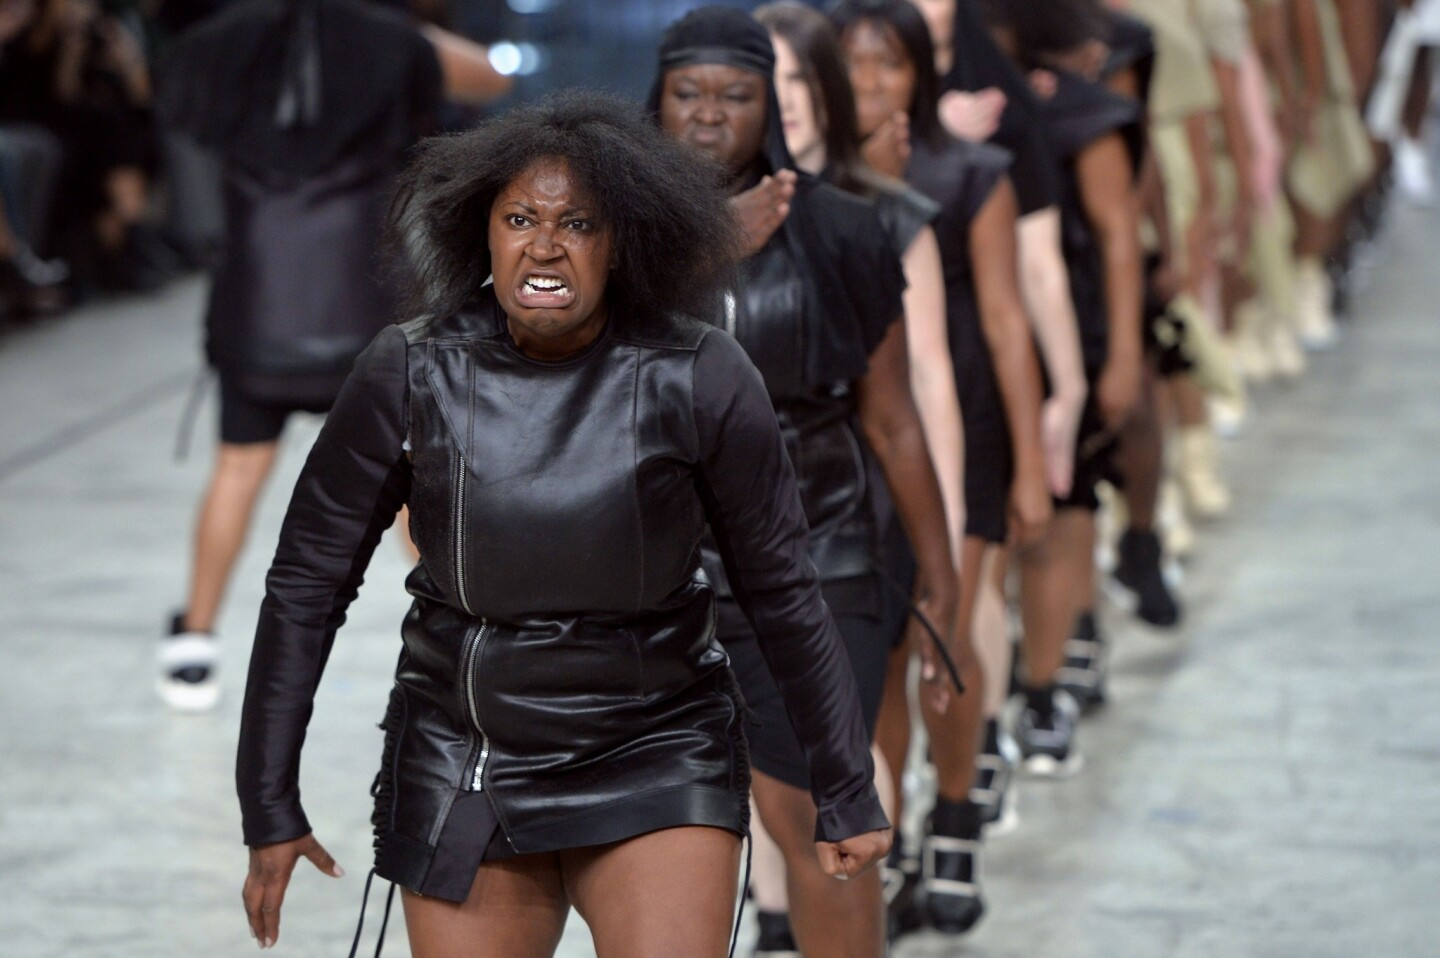 Models perform as they present creations by Rick Owens at spring/summer 2014 Paris Fashion Week.